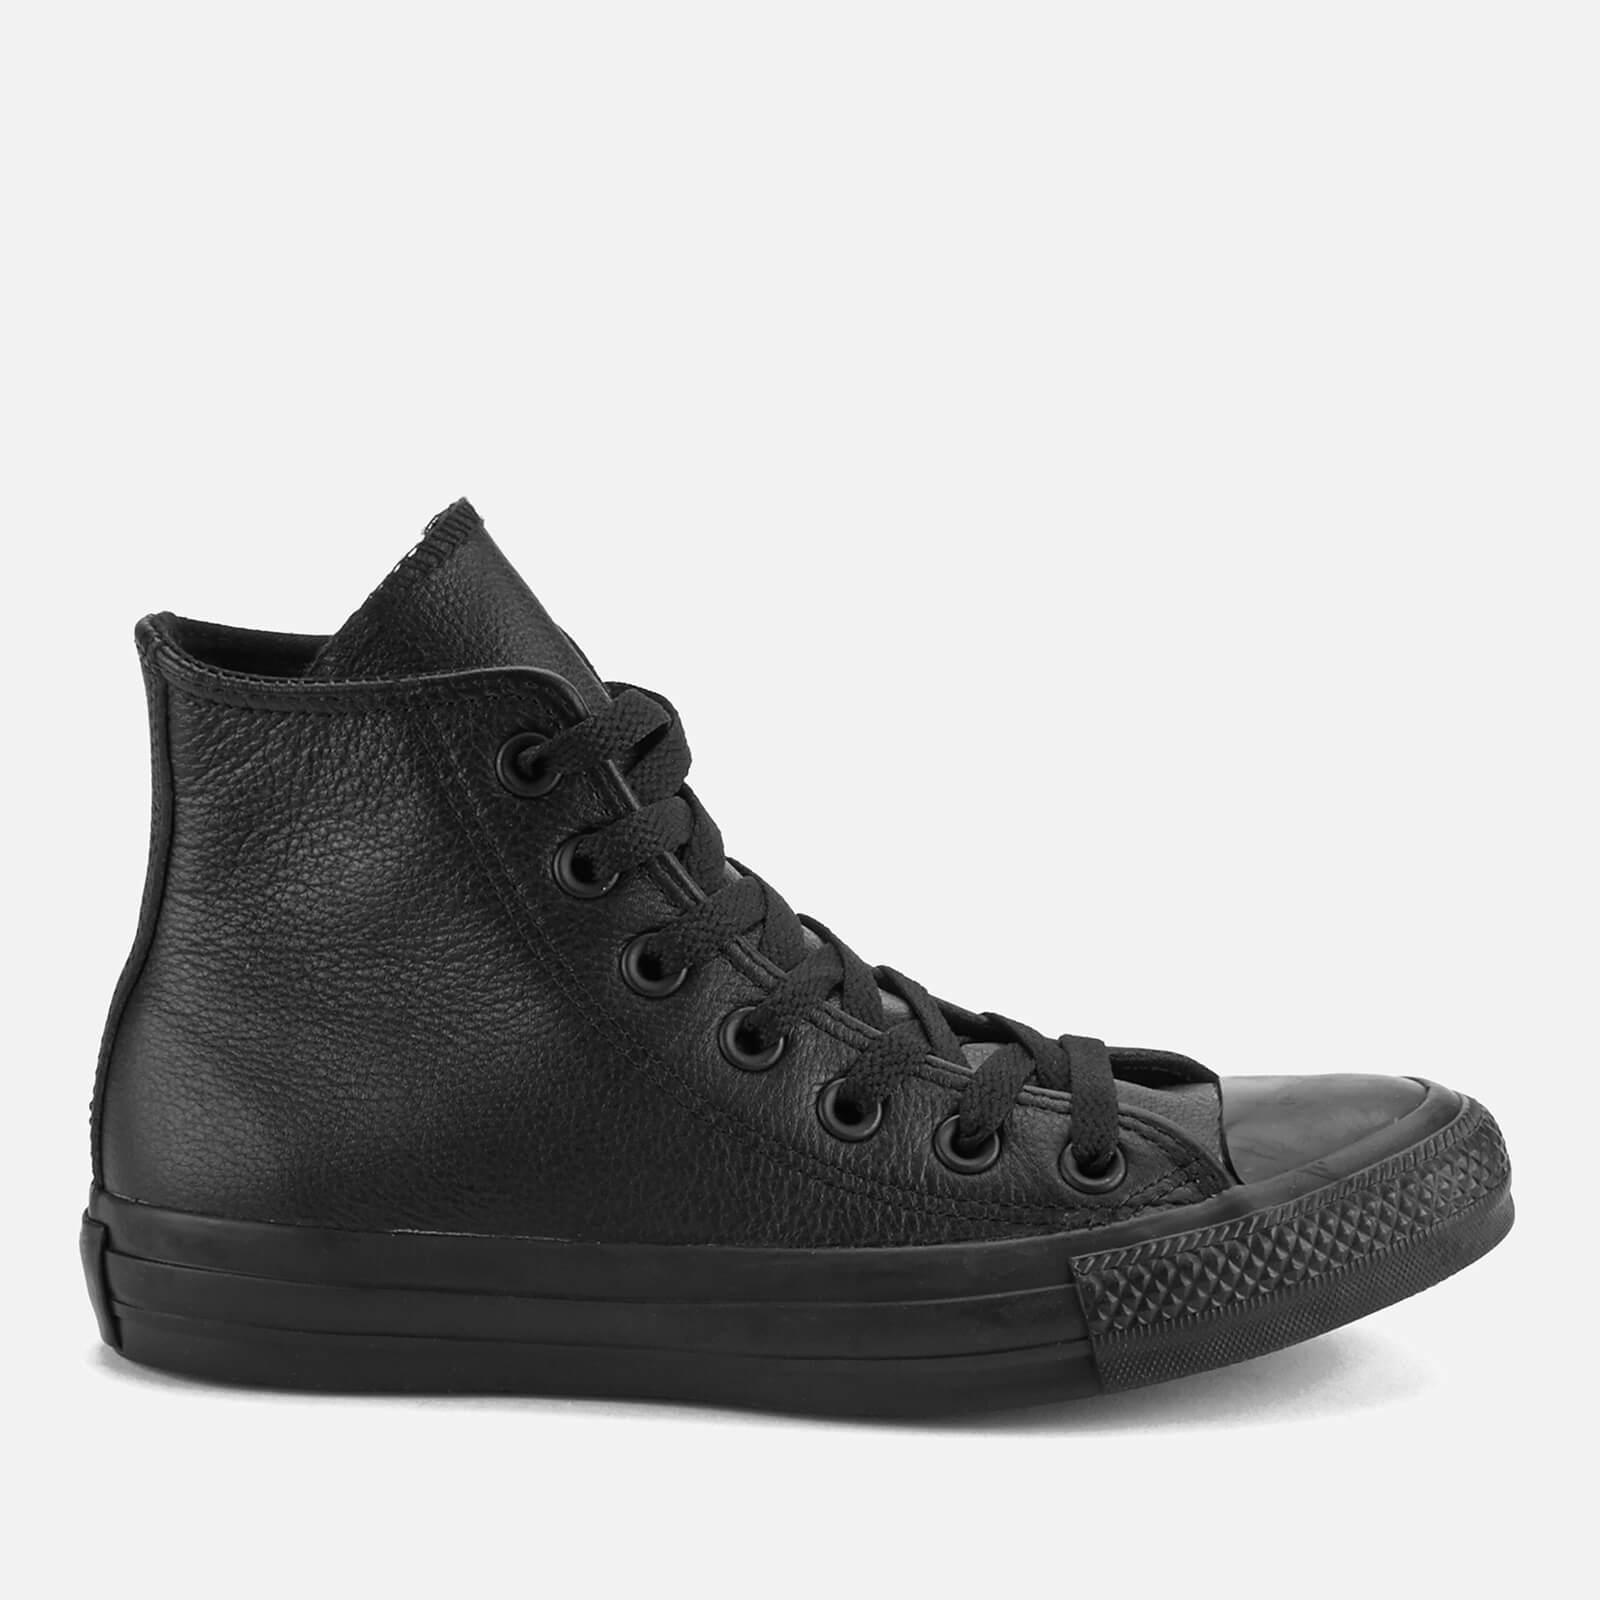 6de1b764c076 Converse Chuck Taylor All Star Leather Hi-Top Trainers - Black ...